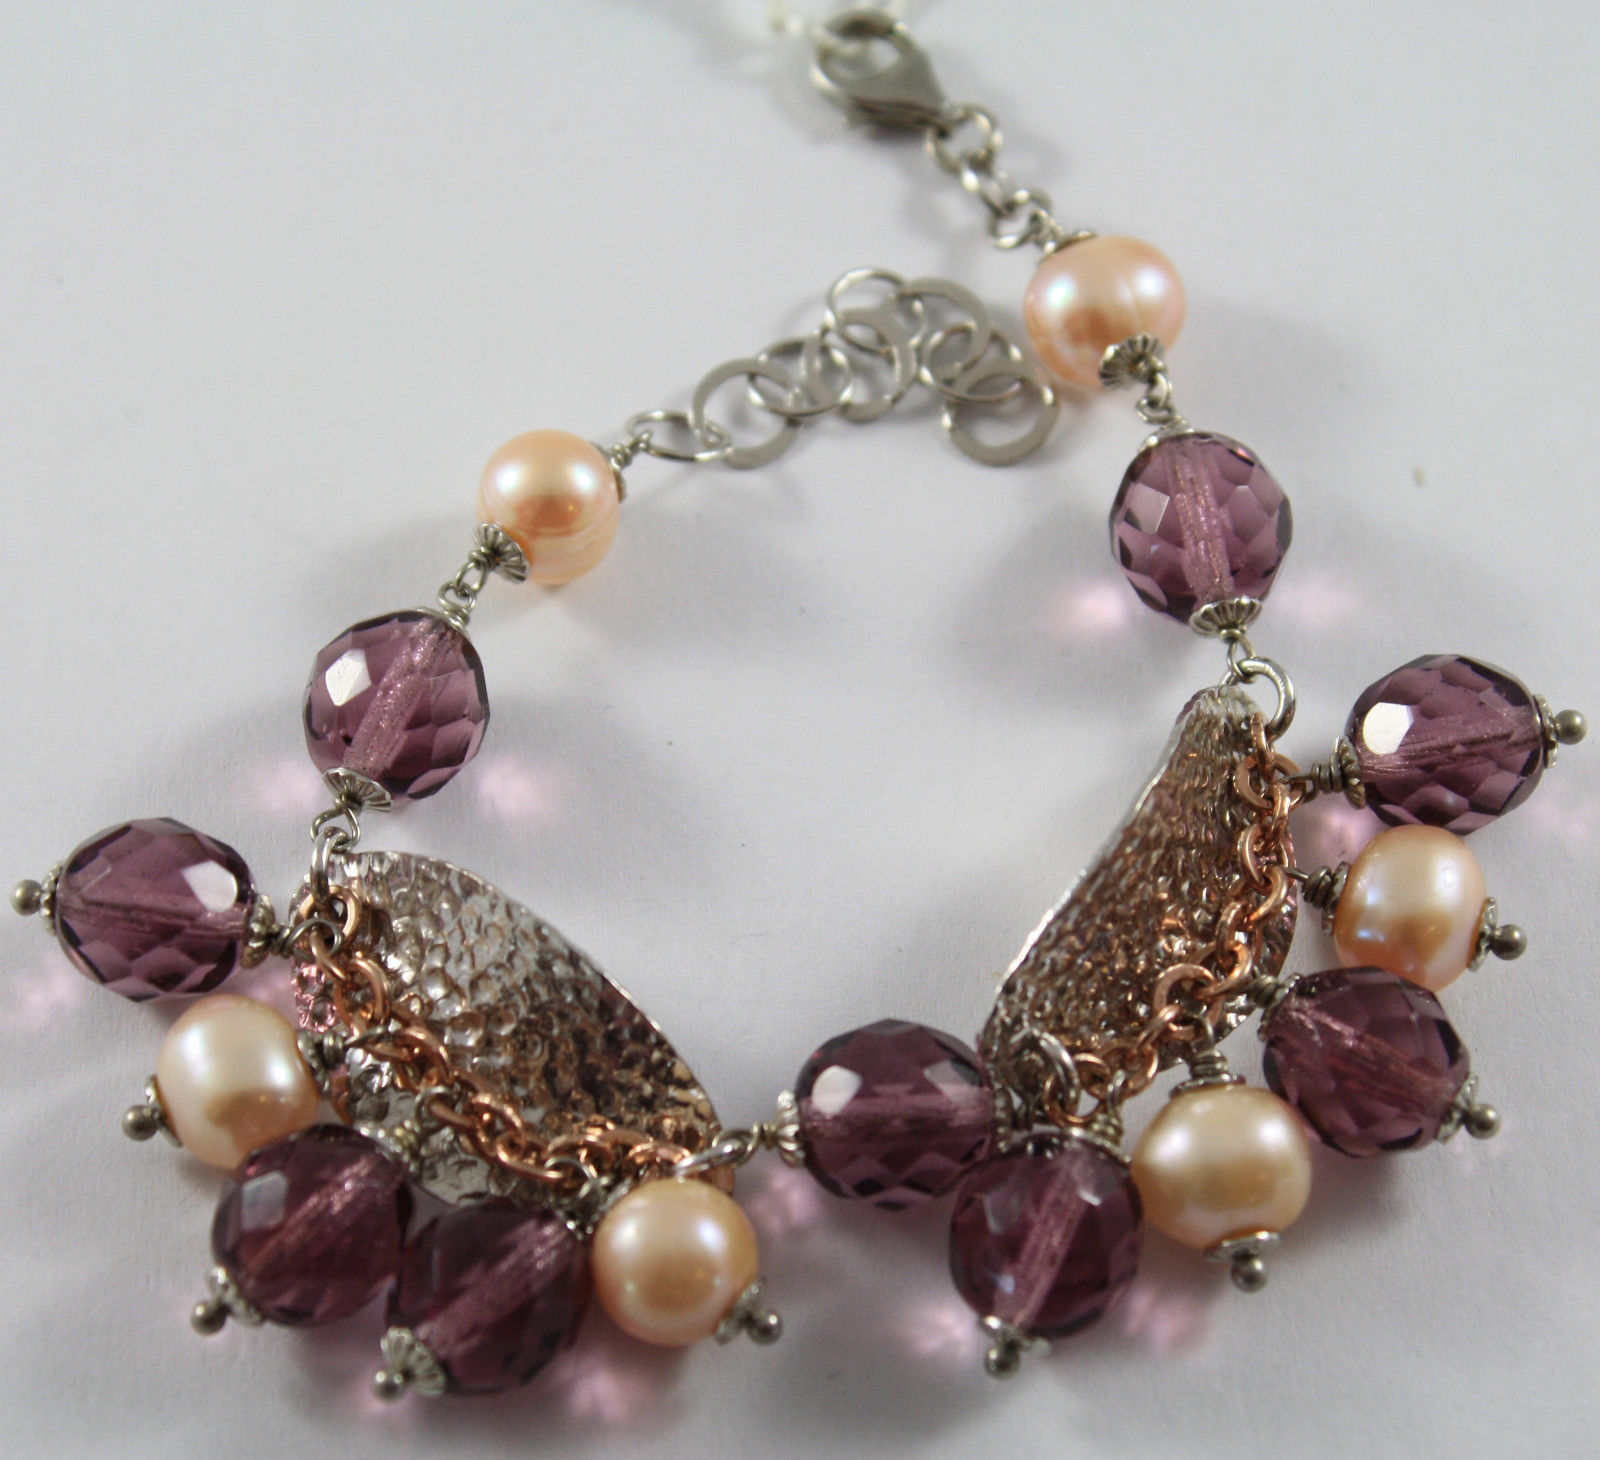 .925 RHODIUM SILVER AND ROSE PLATED BRACELET WITH ROSE PEARLS,AND PURPLE CRISTAL